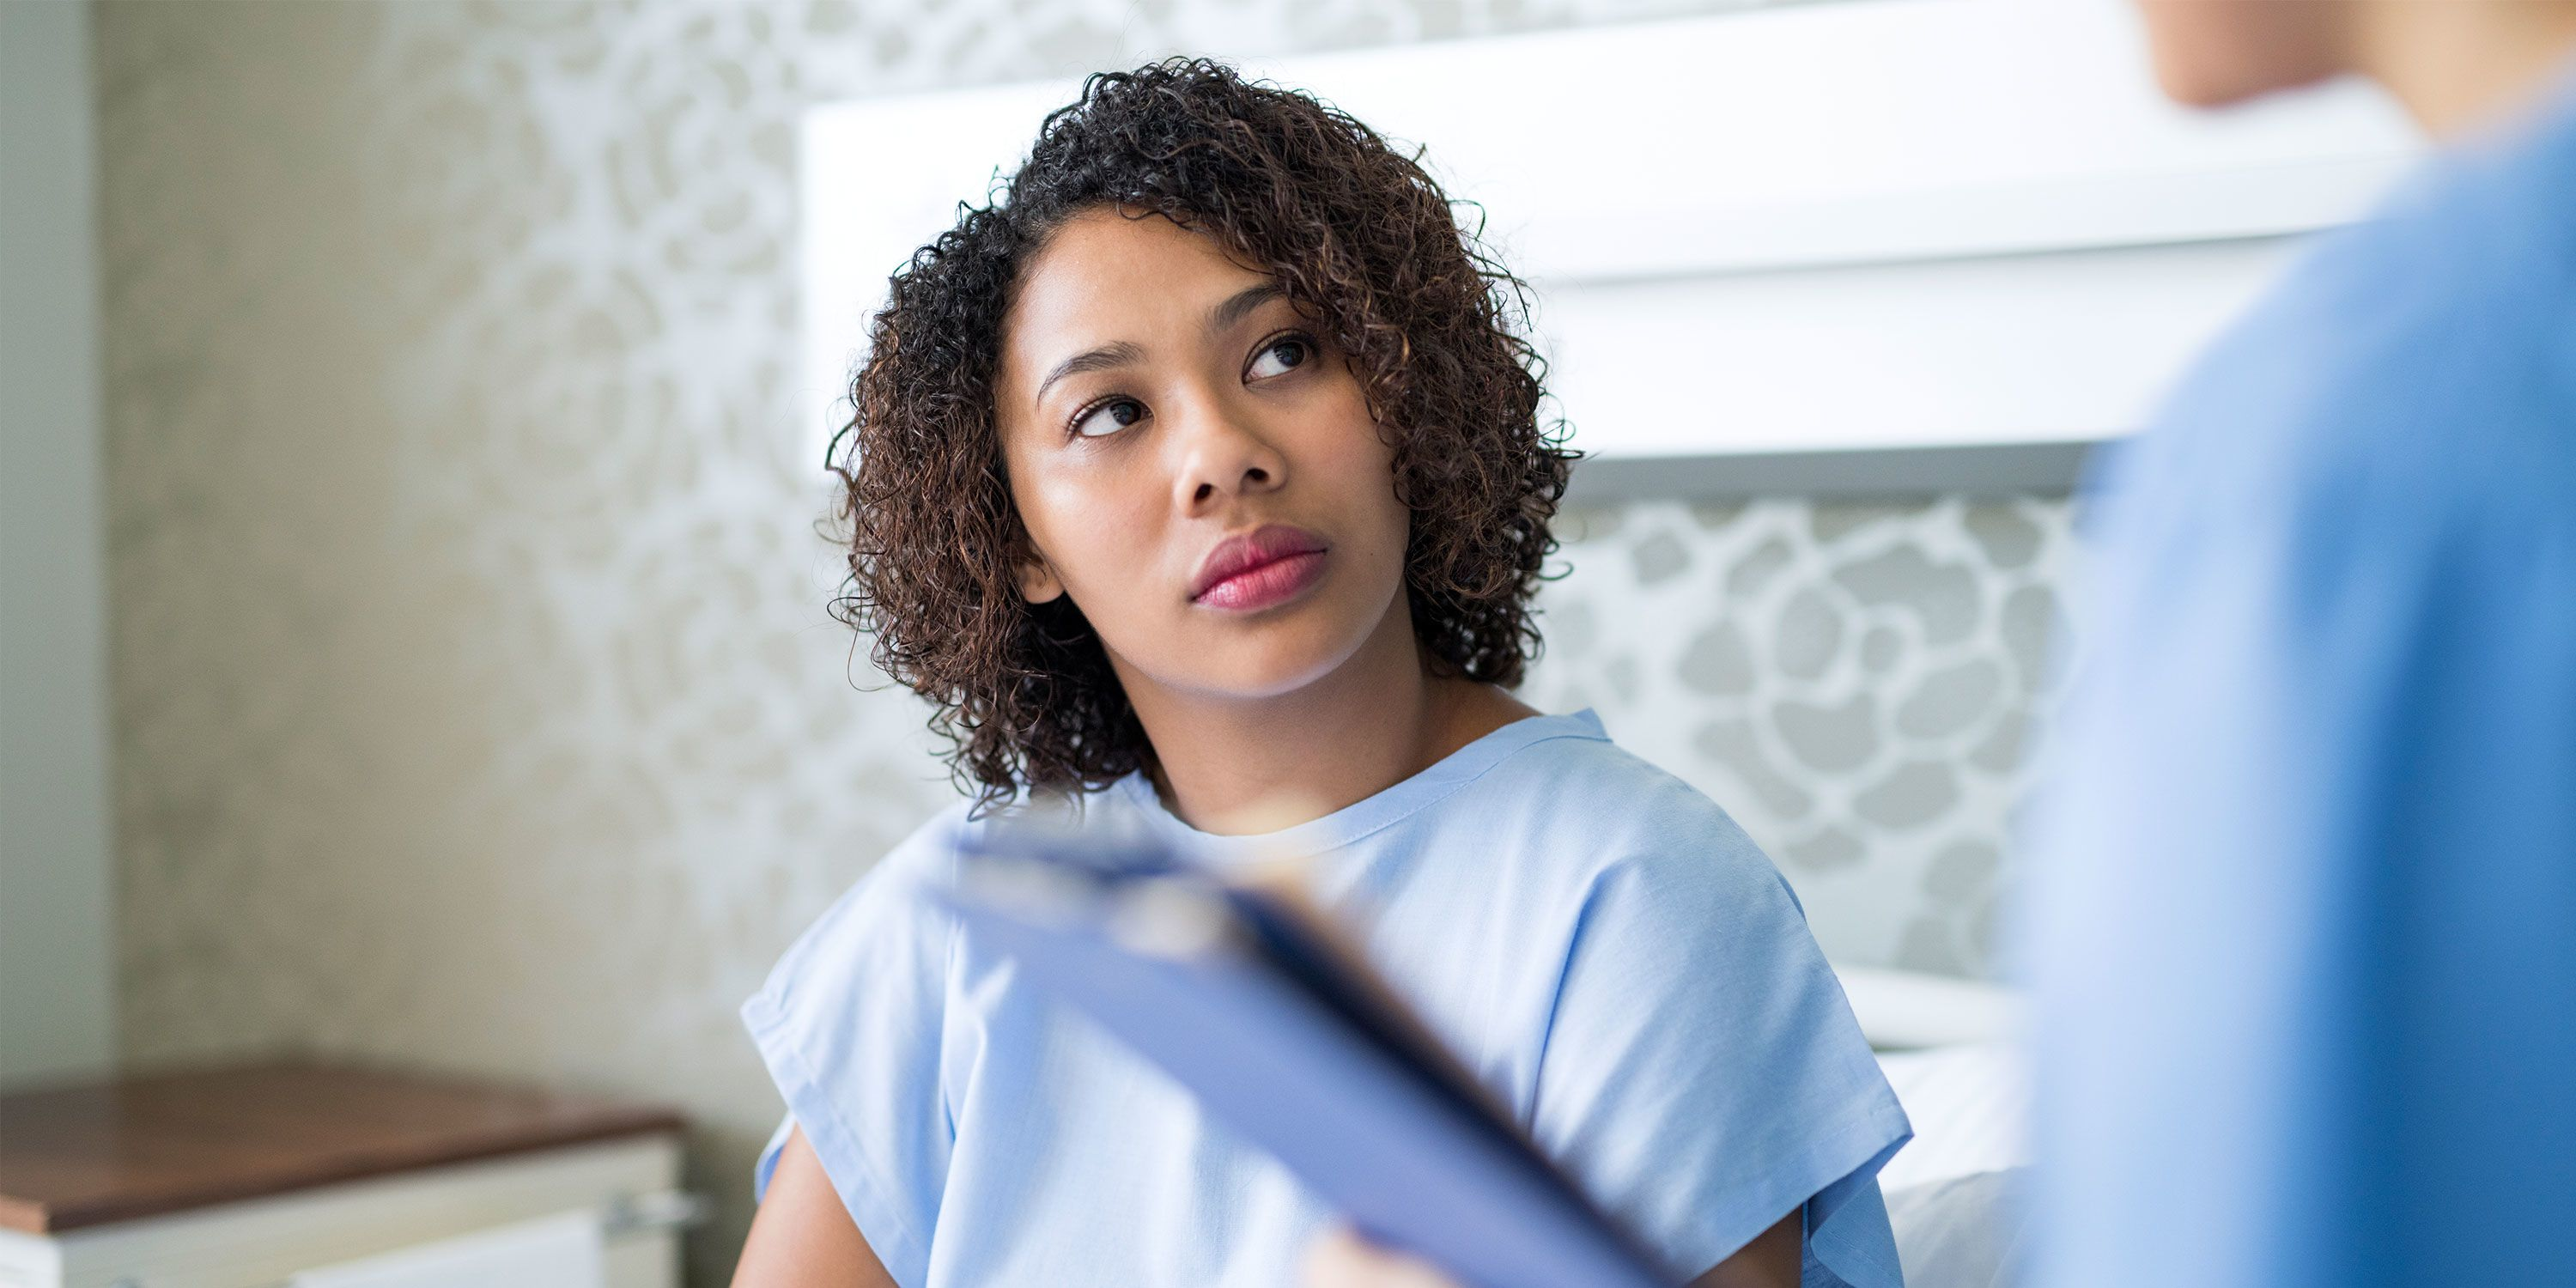 A woman in a patient outfit sits in a hospital room looking up at a doctor that is not fully seen.